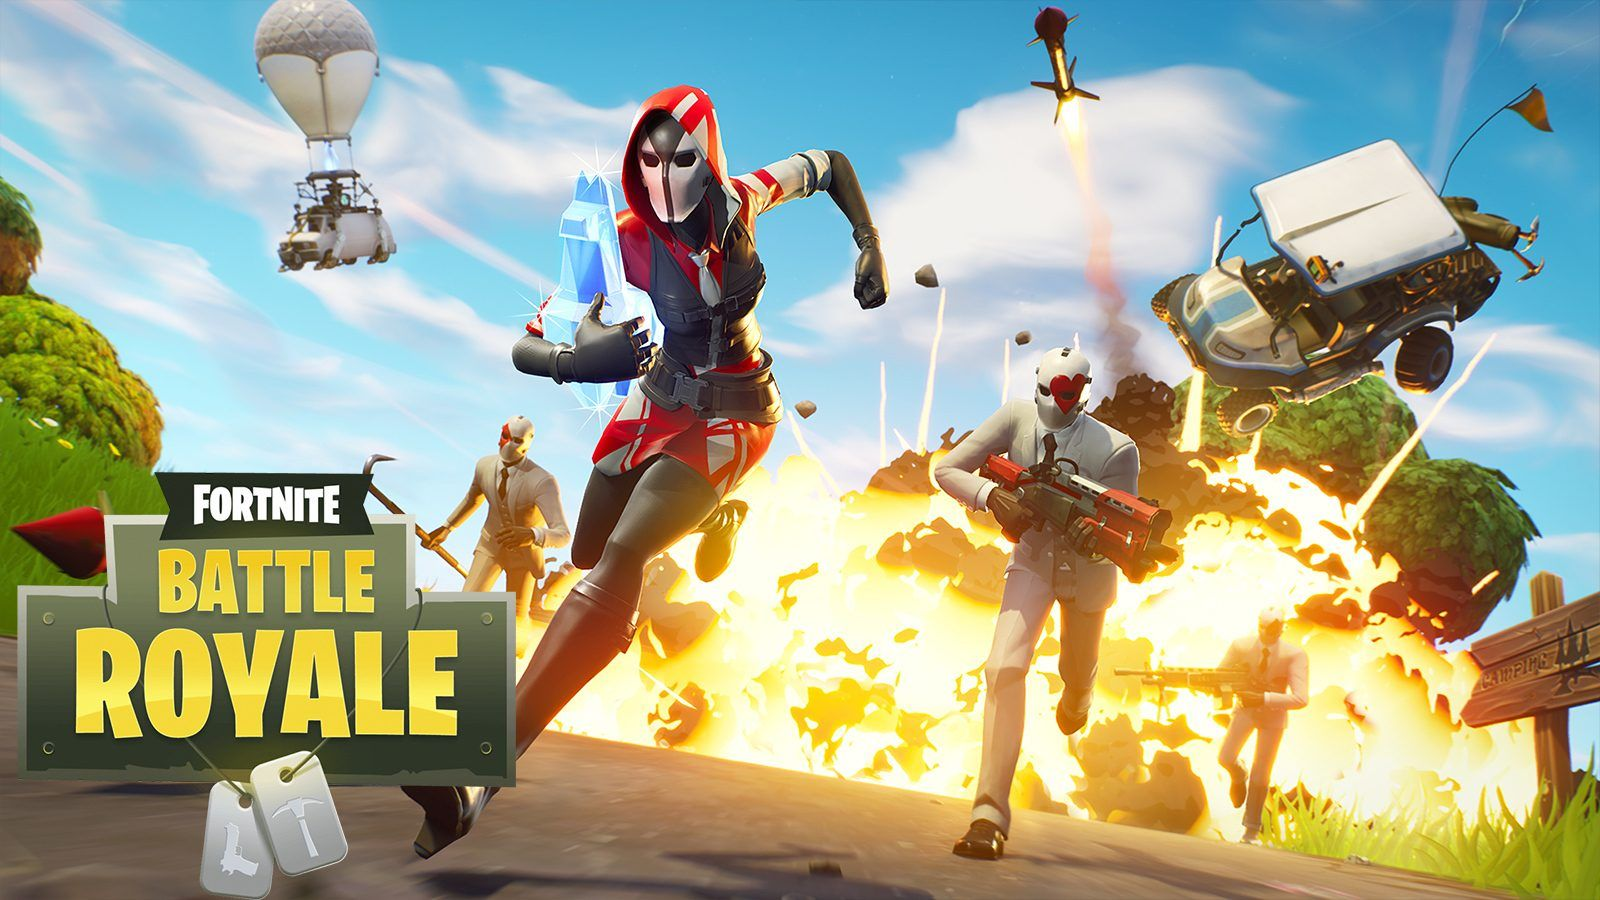 Fortnite mobile gained almost $40 Million in the US alone due to the World Cup